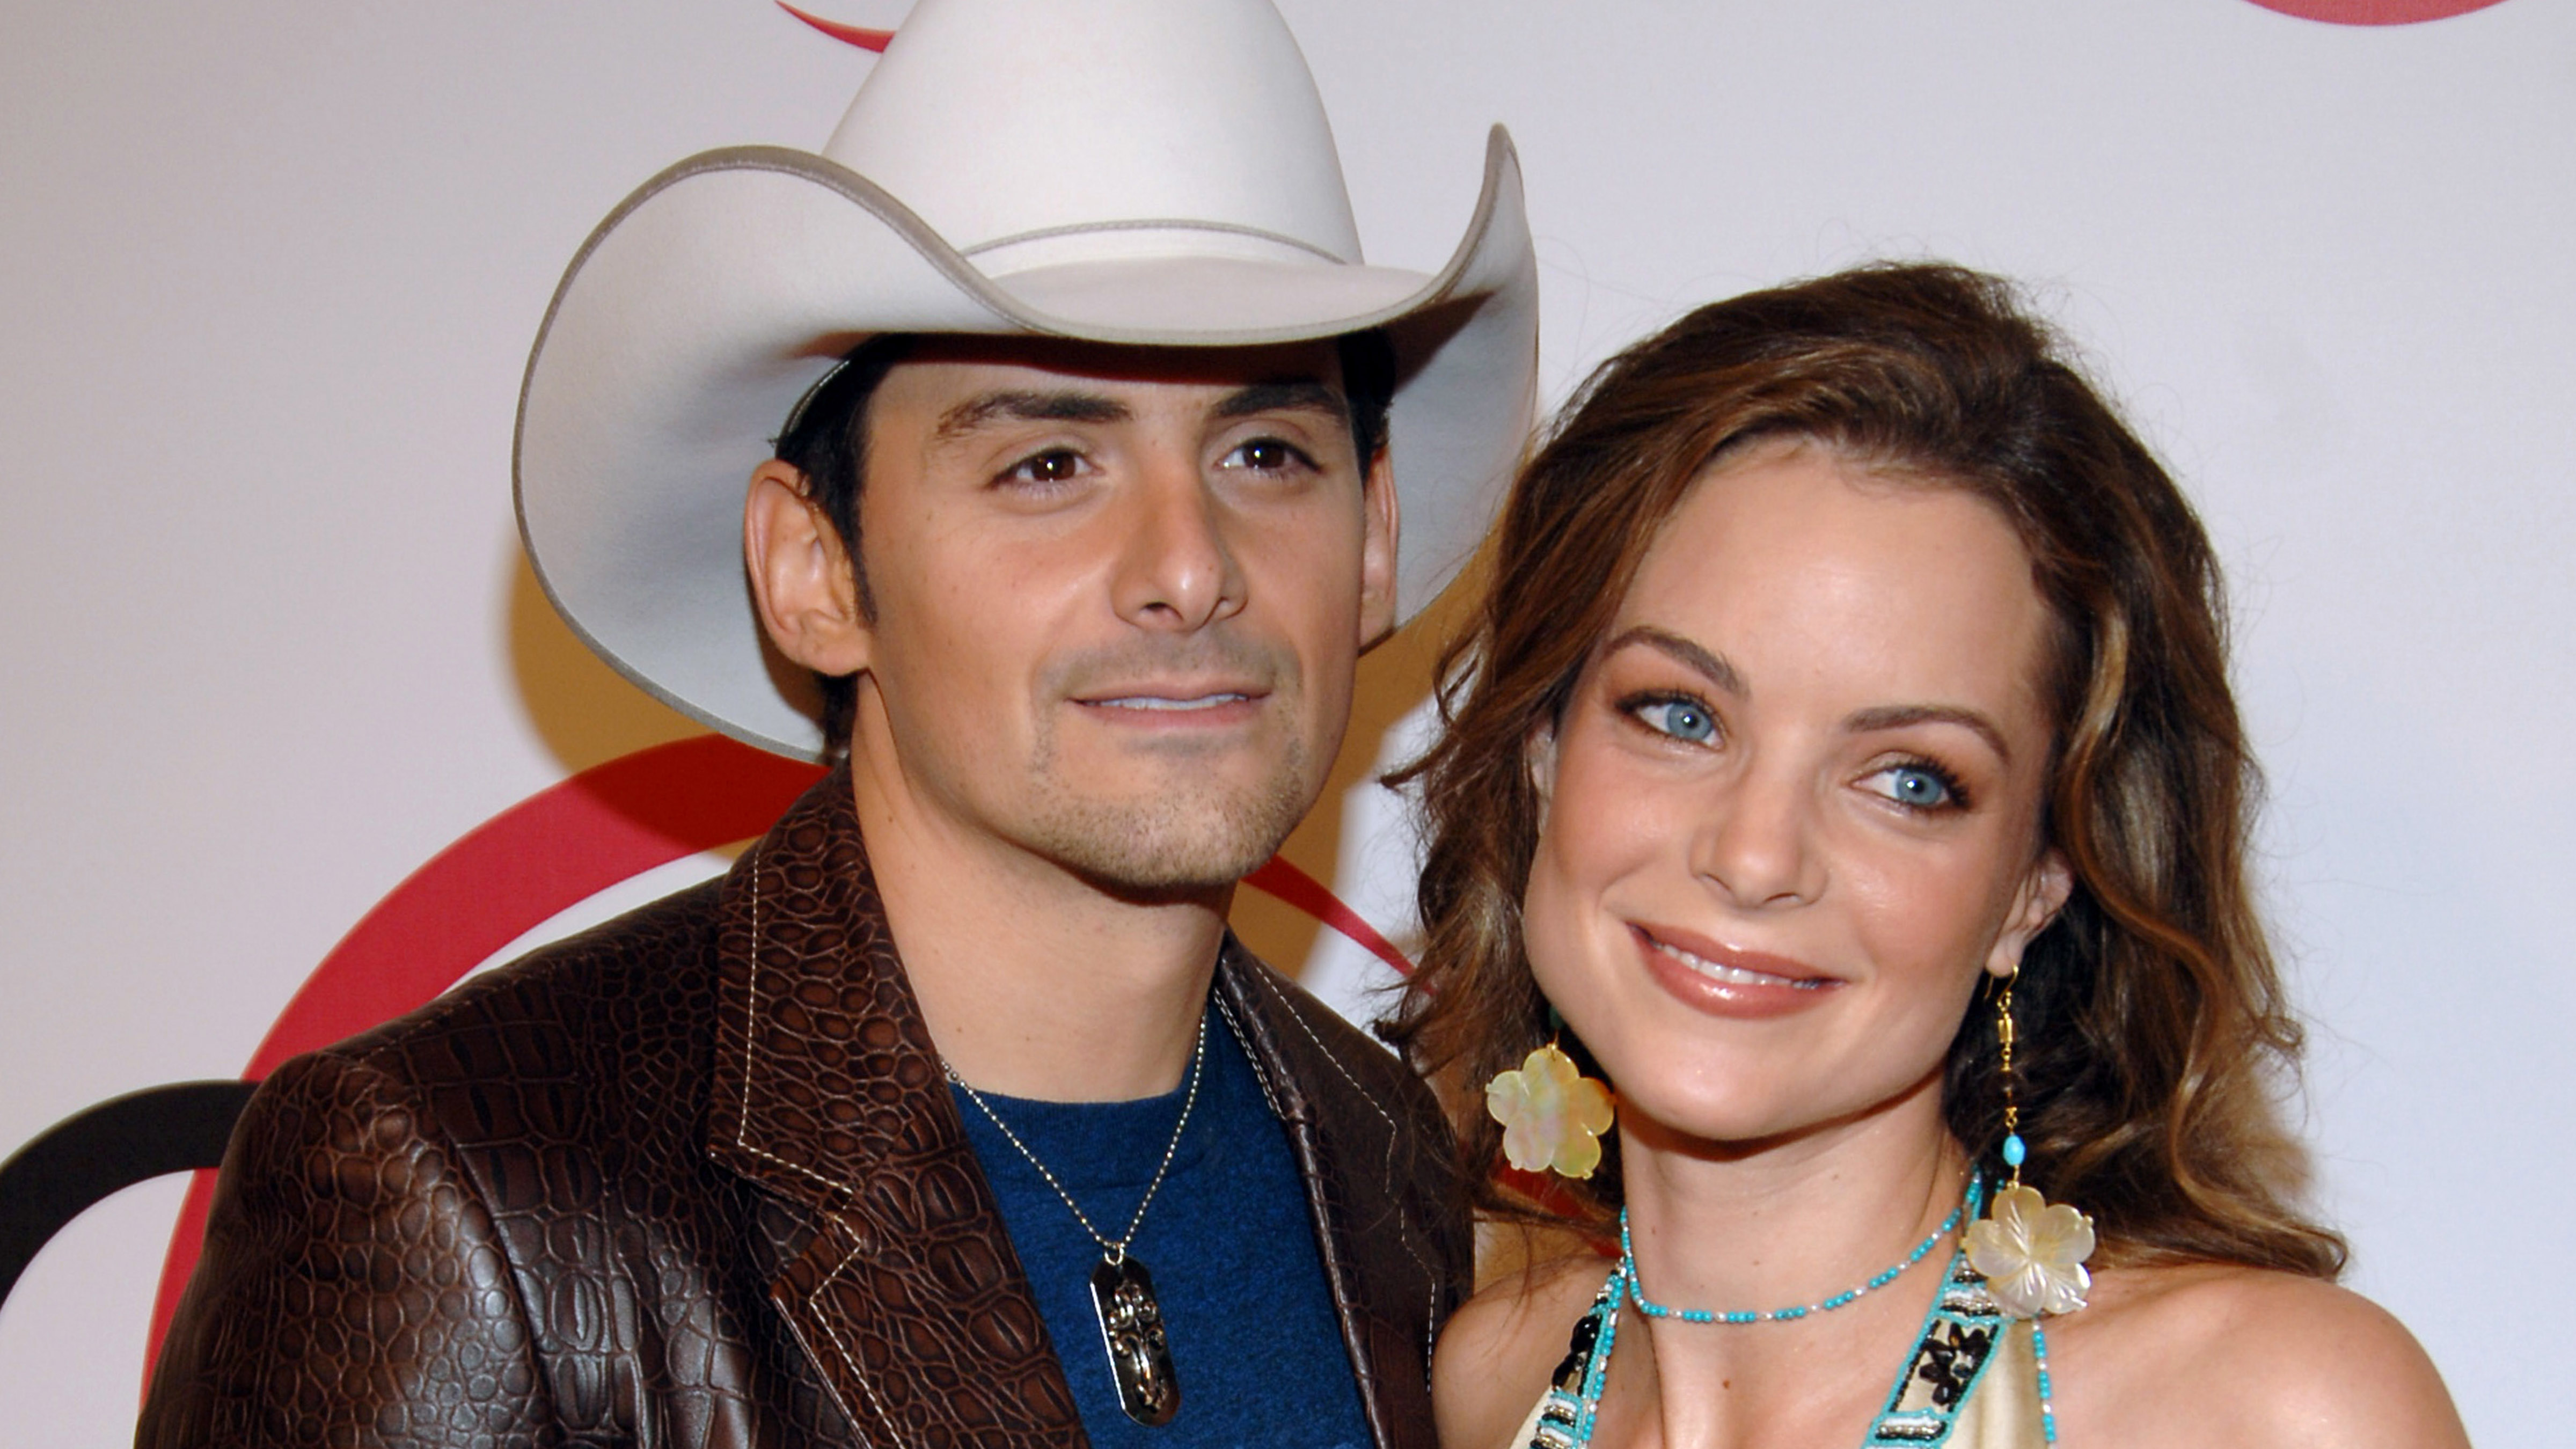 Who Is Brad Paisley's Wife? Kimberly Williams-Paisley And The Country Singer Have An Epic Love Story